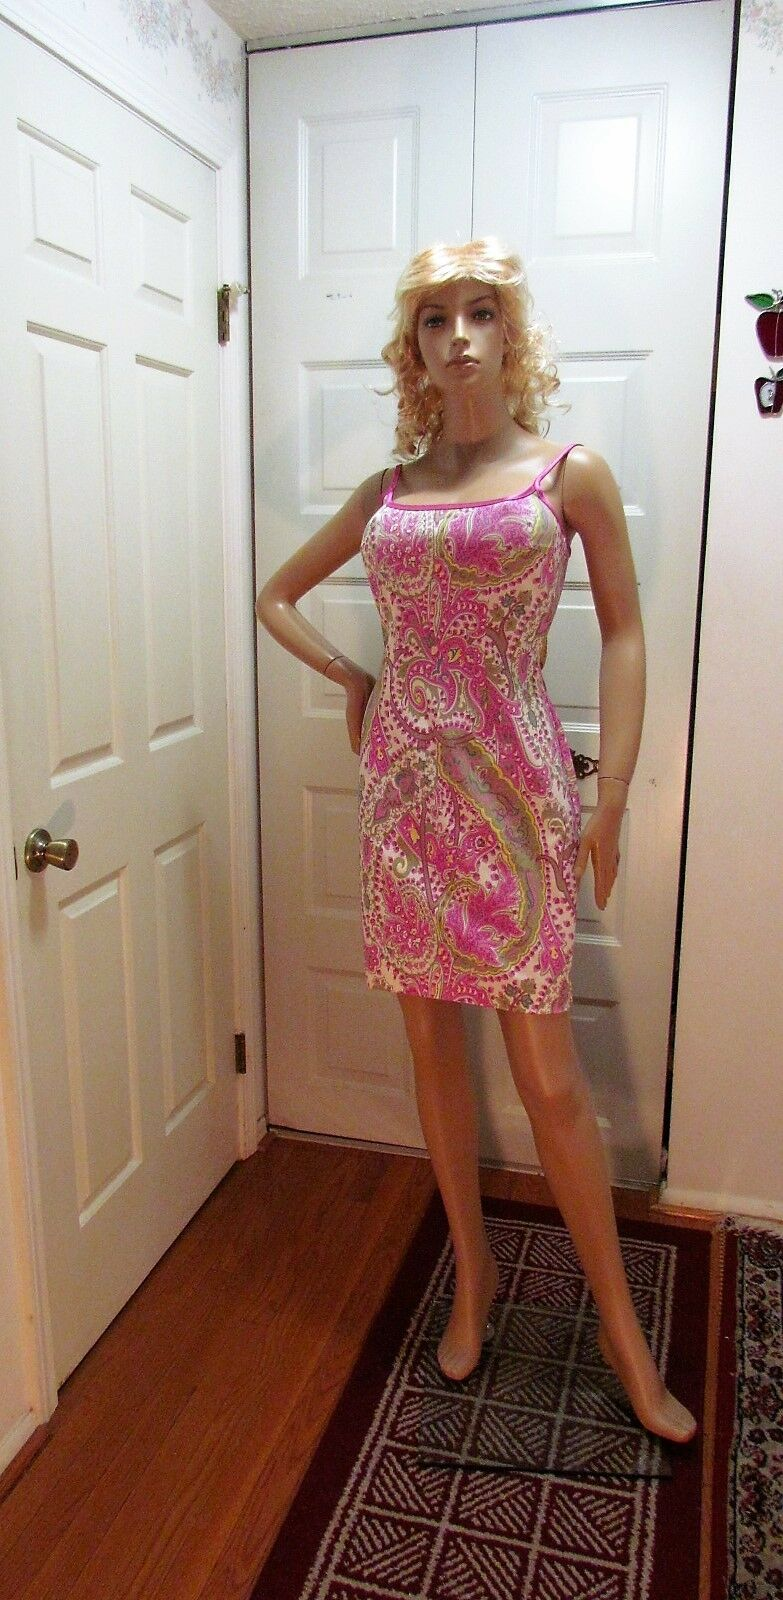 Women's Dress Maria white black Floral Pink Sleeveless Size M Made in USA